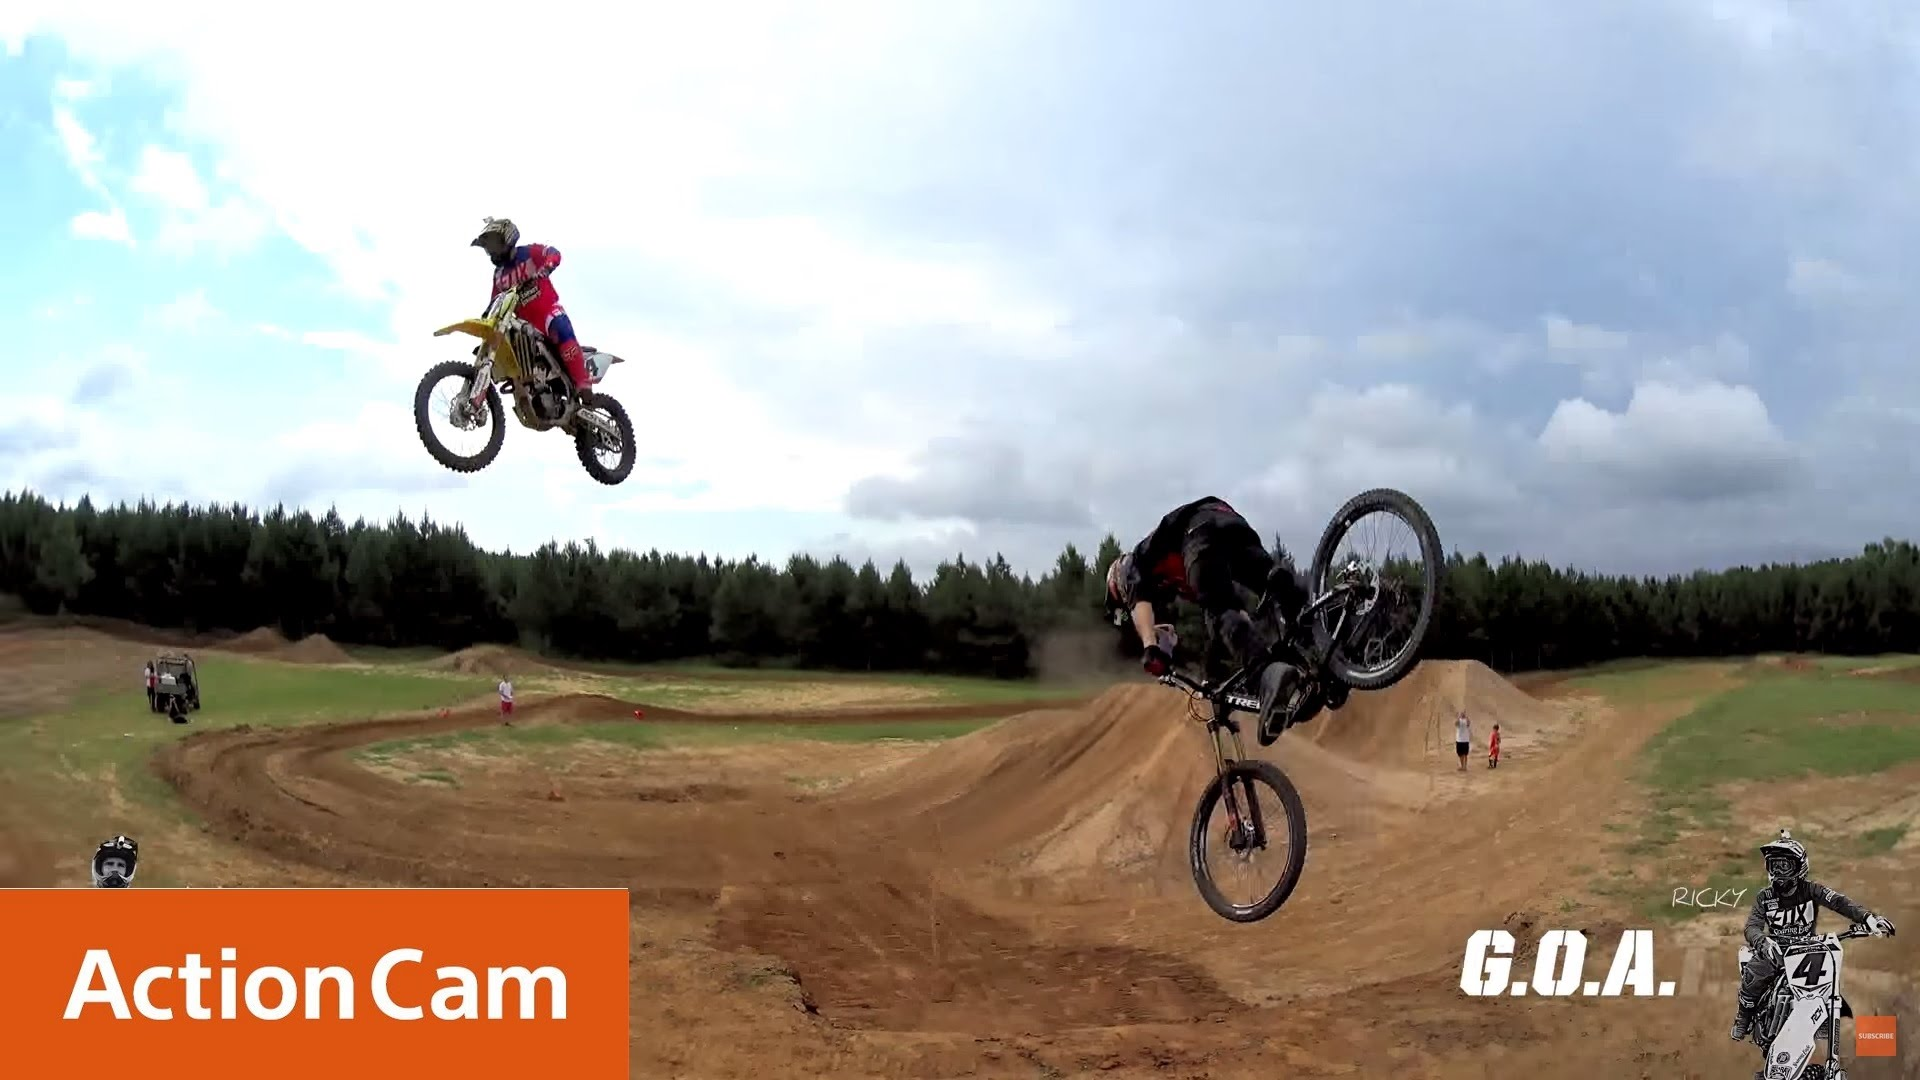 Action Cam | Ricky Carmichael & Cam McCaul – A Game of GOAT – 4K | Sony